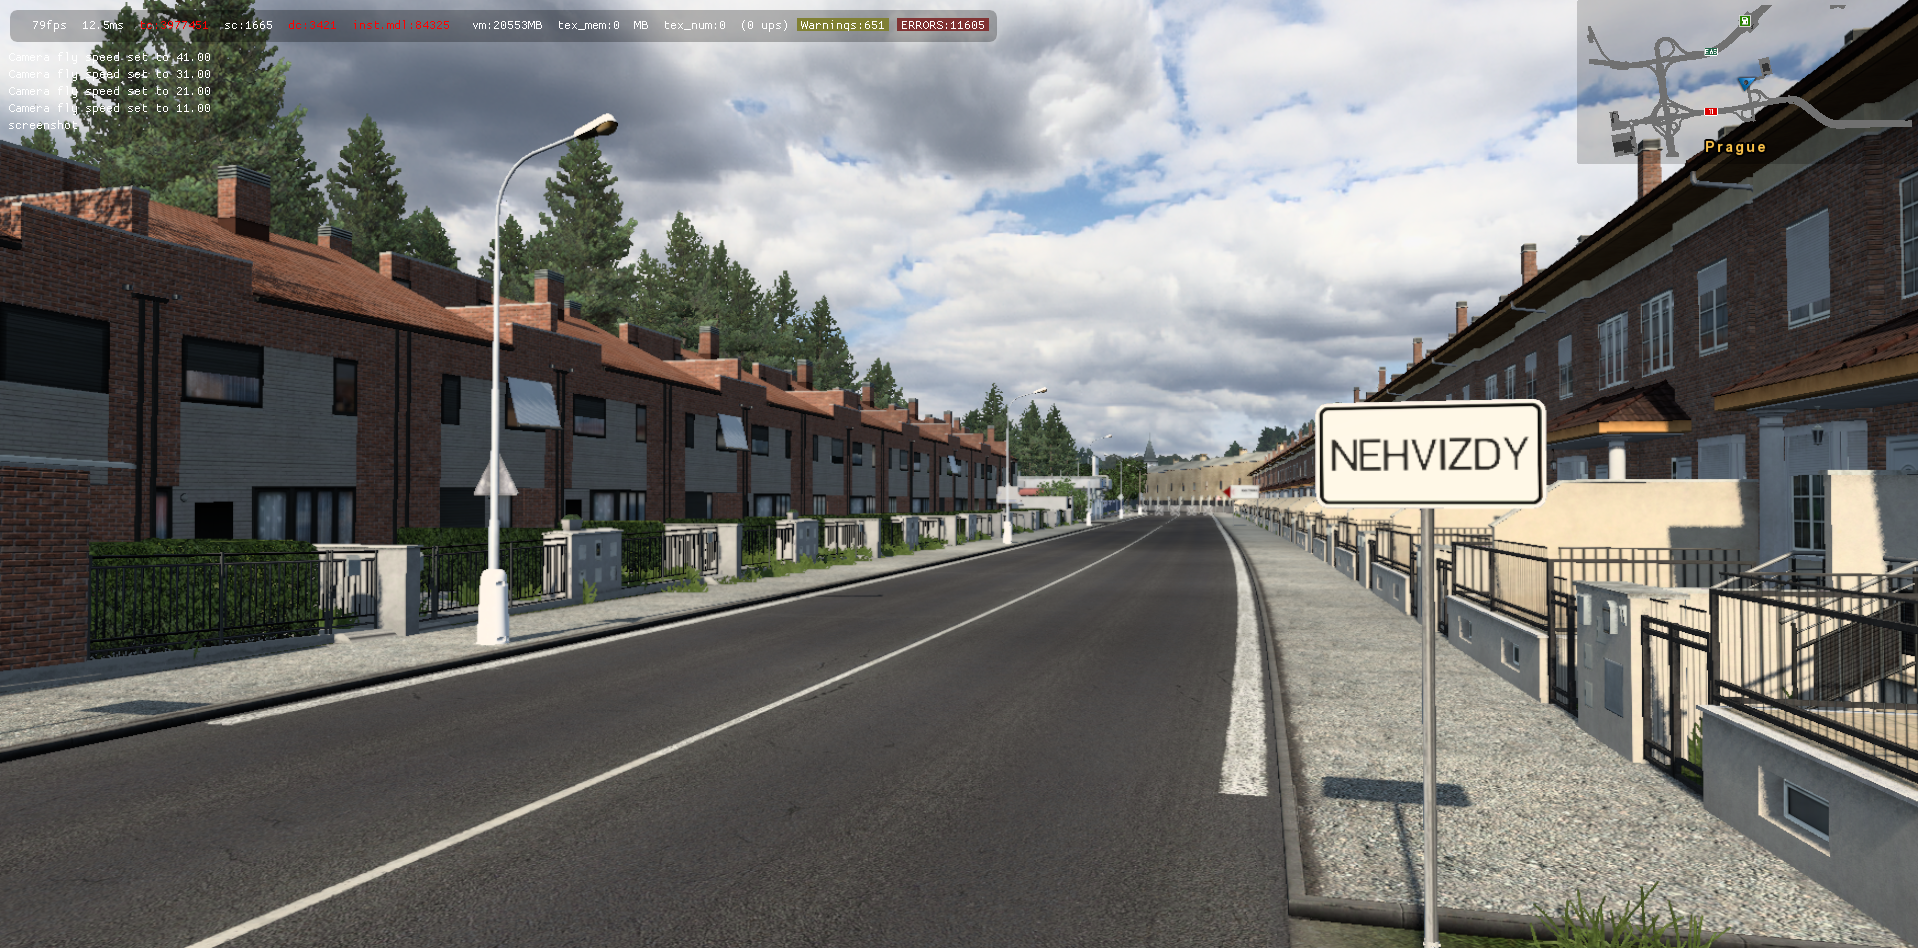 ets2_20210531_203003_00.png